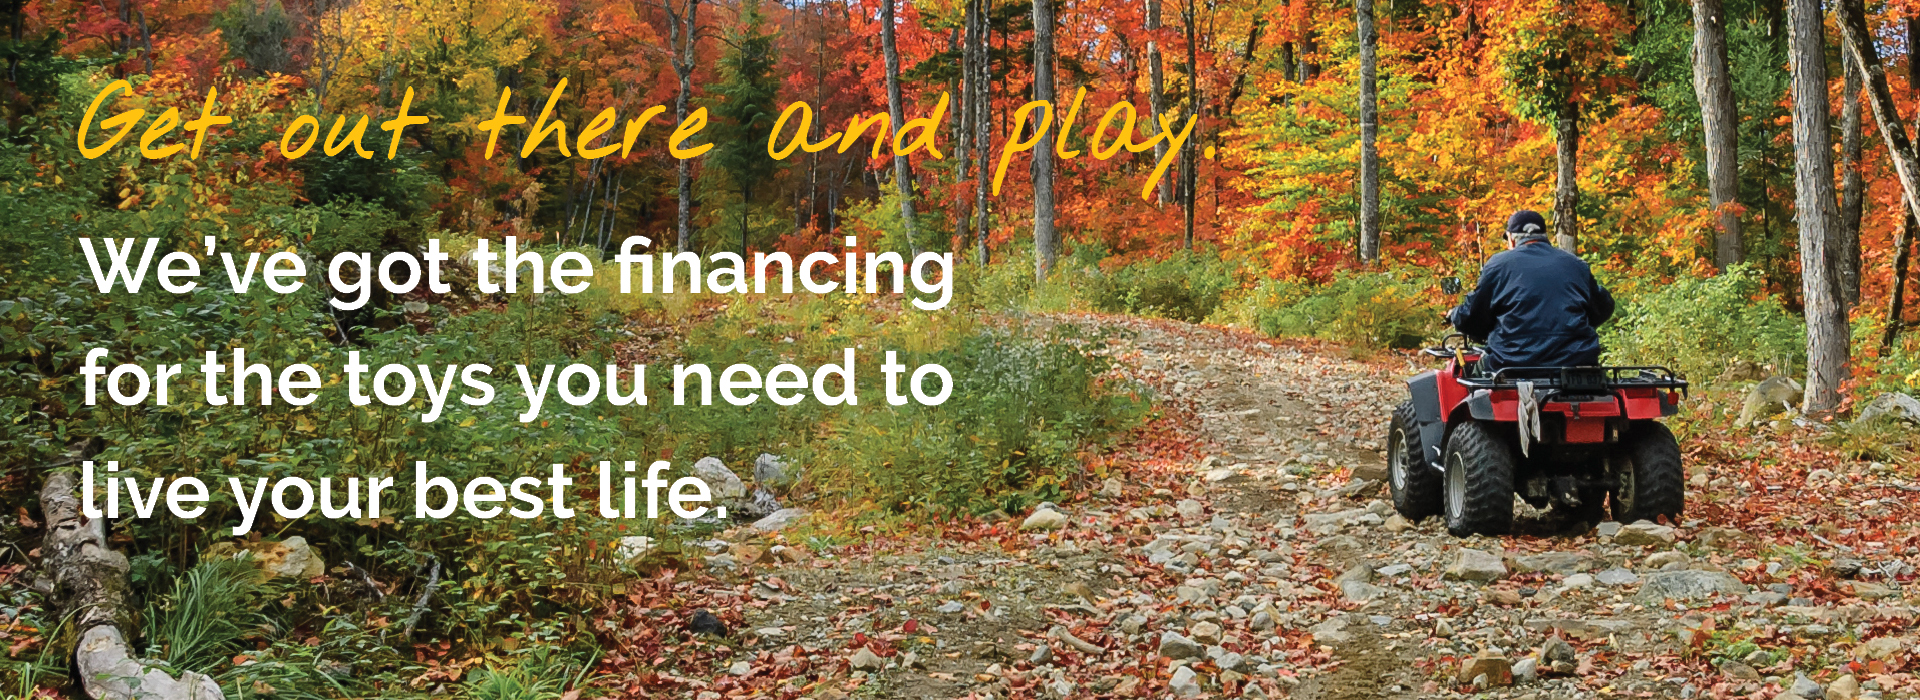 Fall Financing for Vehicles